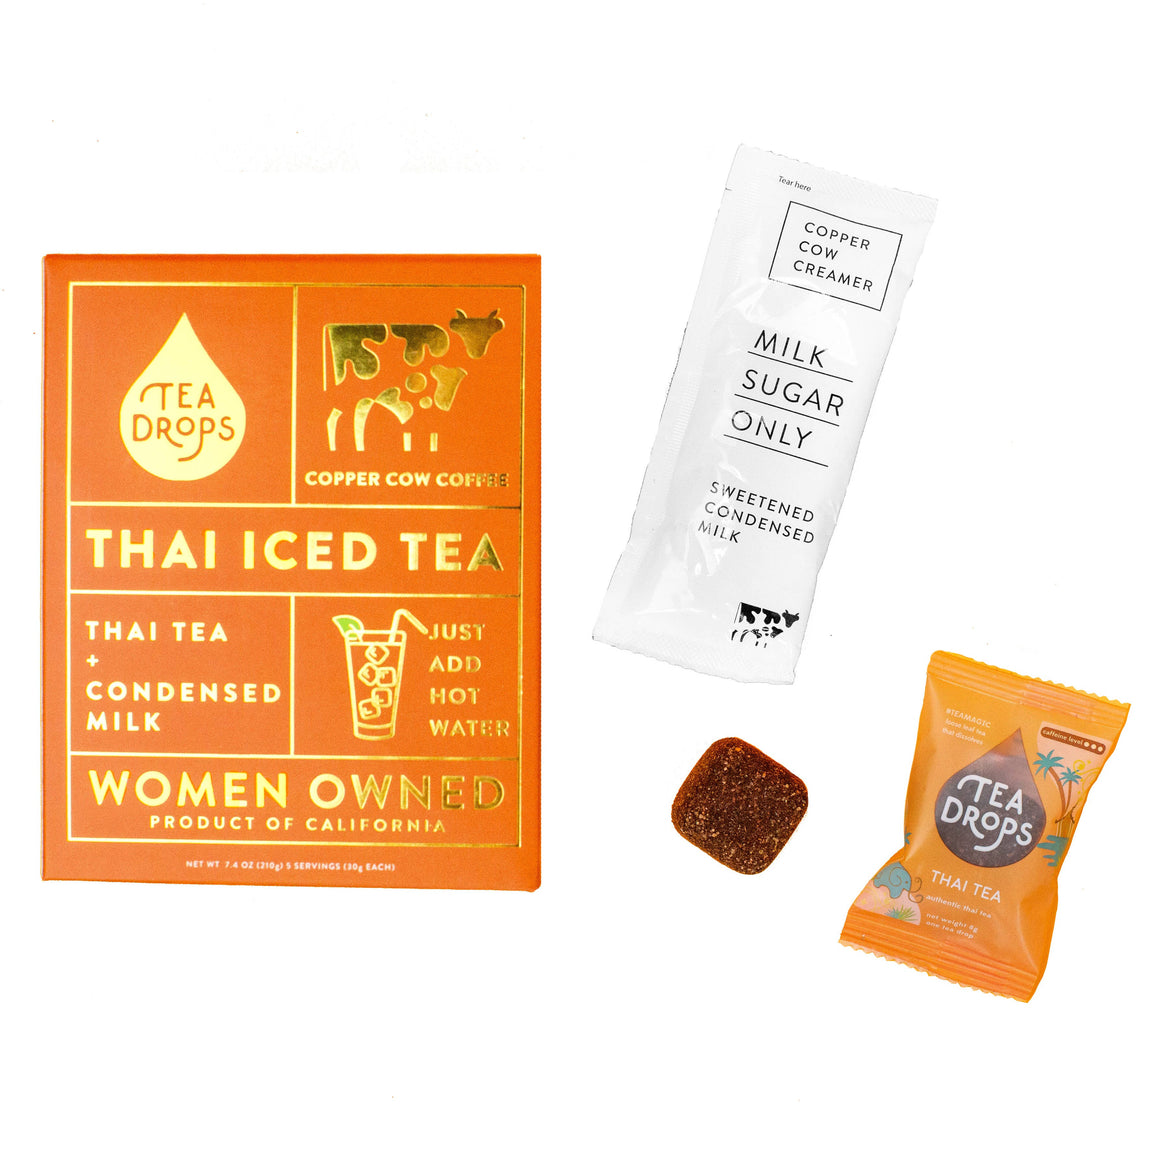 Tea Drops Thai Iced Tea Kit